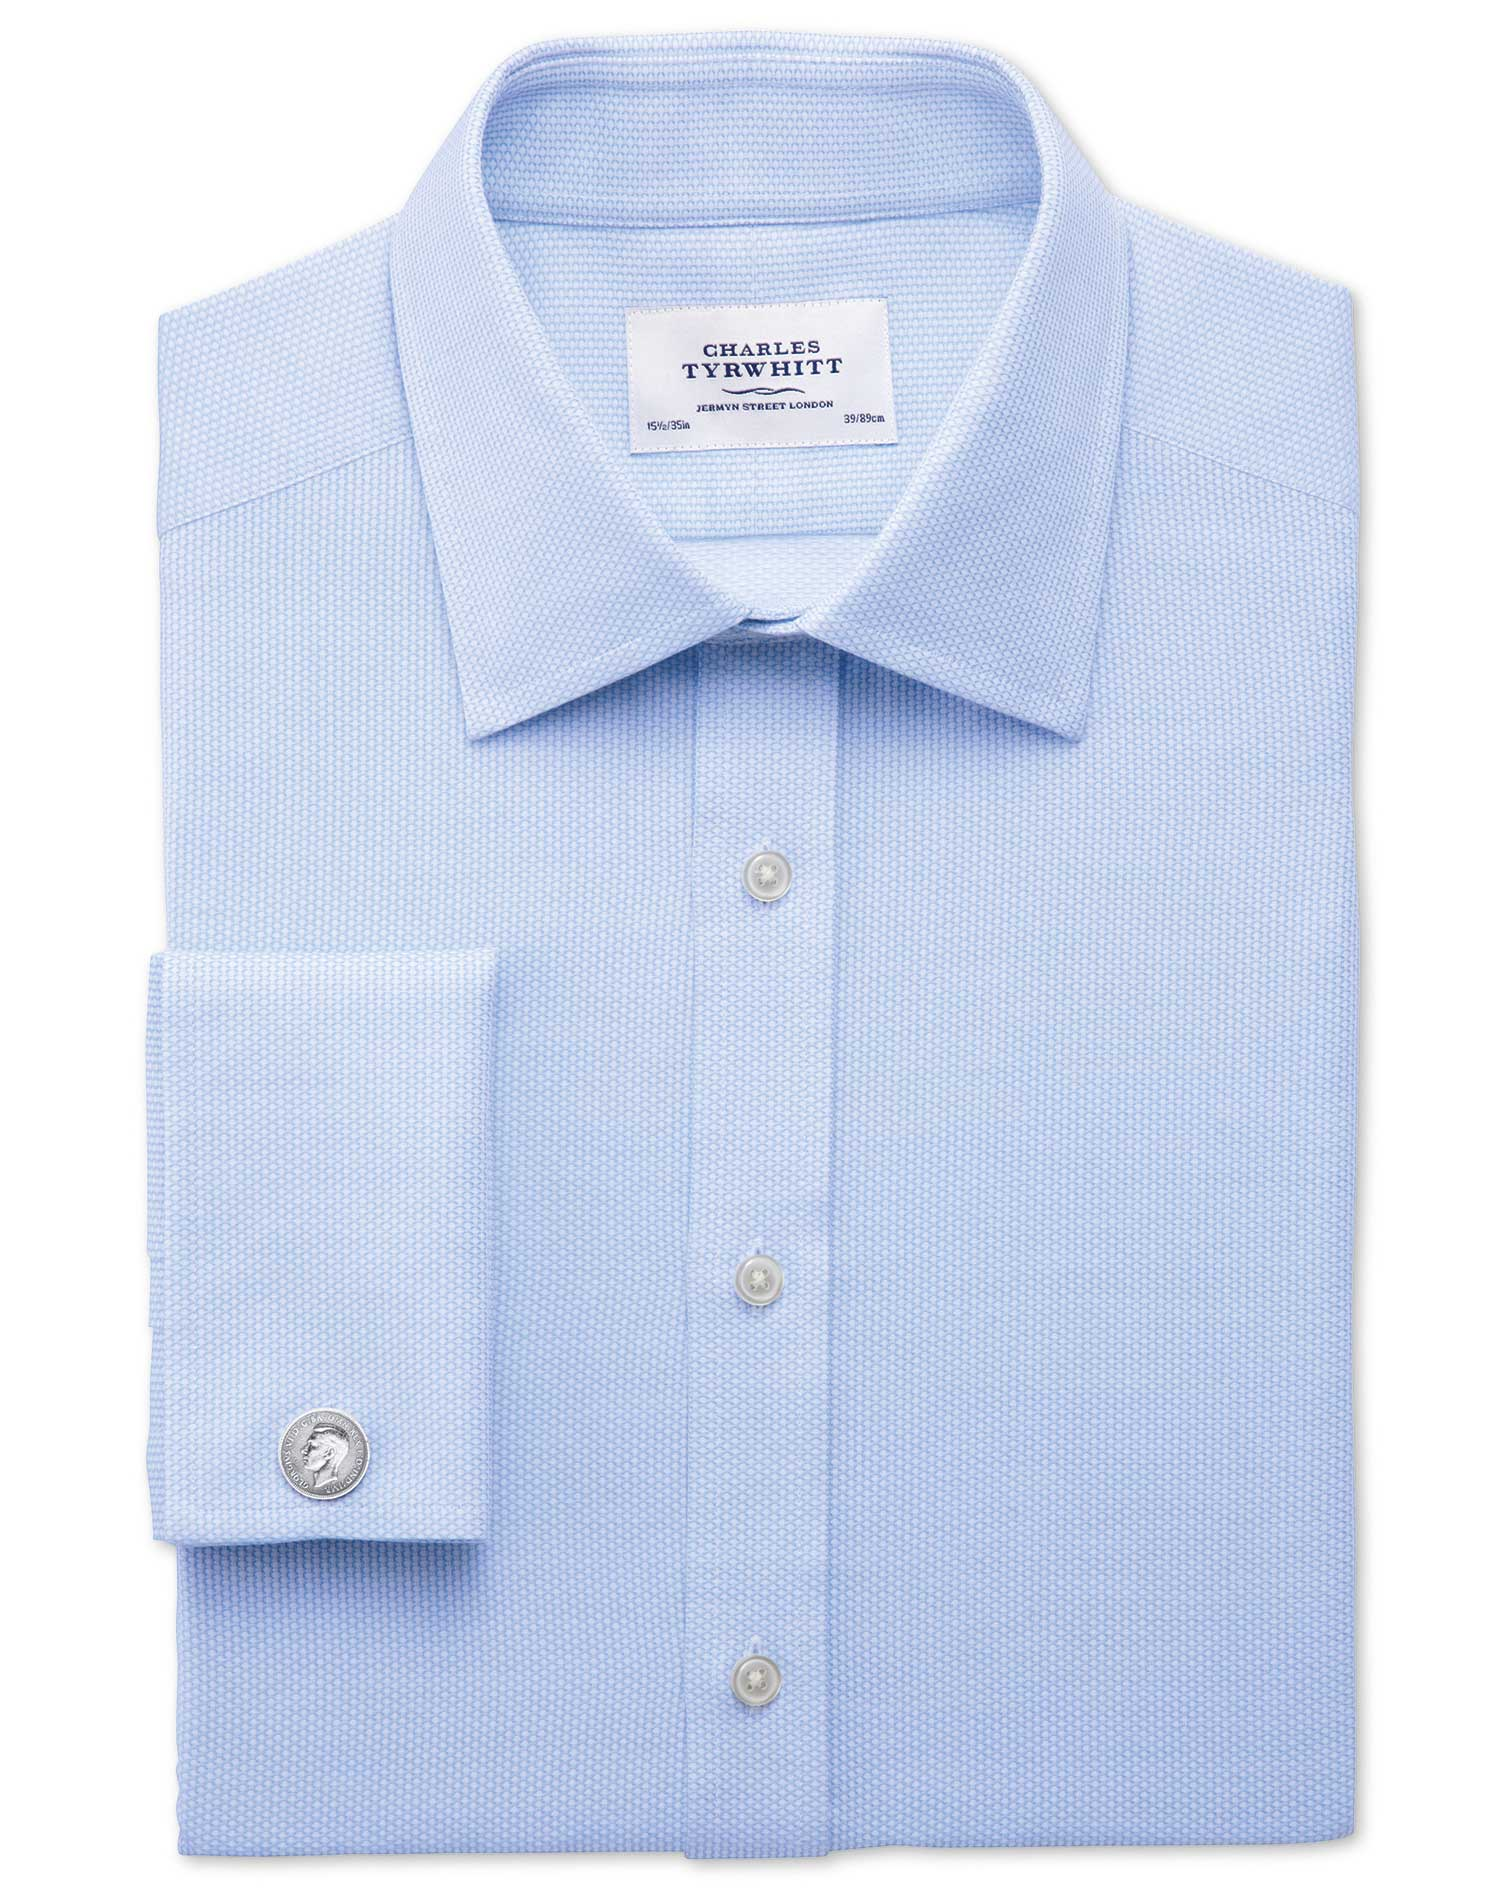 Slim Fit Egyptian Cotton Diamond Texture Sky Blue Formal Shirt Single Cuff Size 18/37 by Charles Tyr